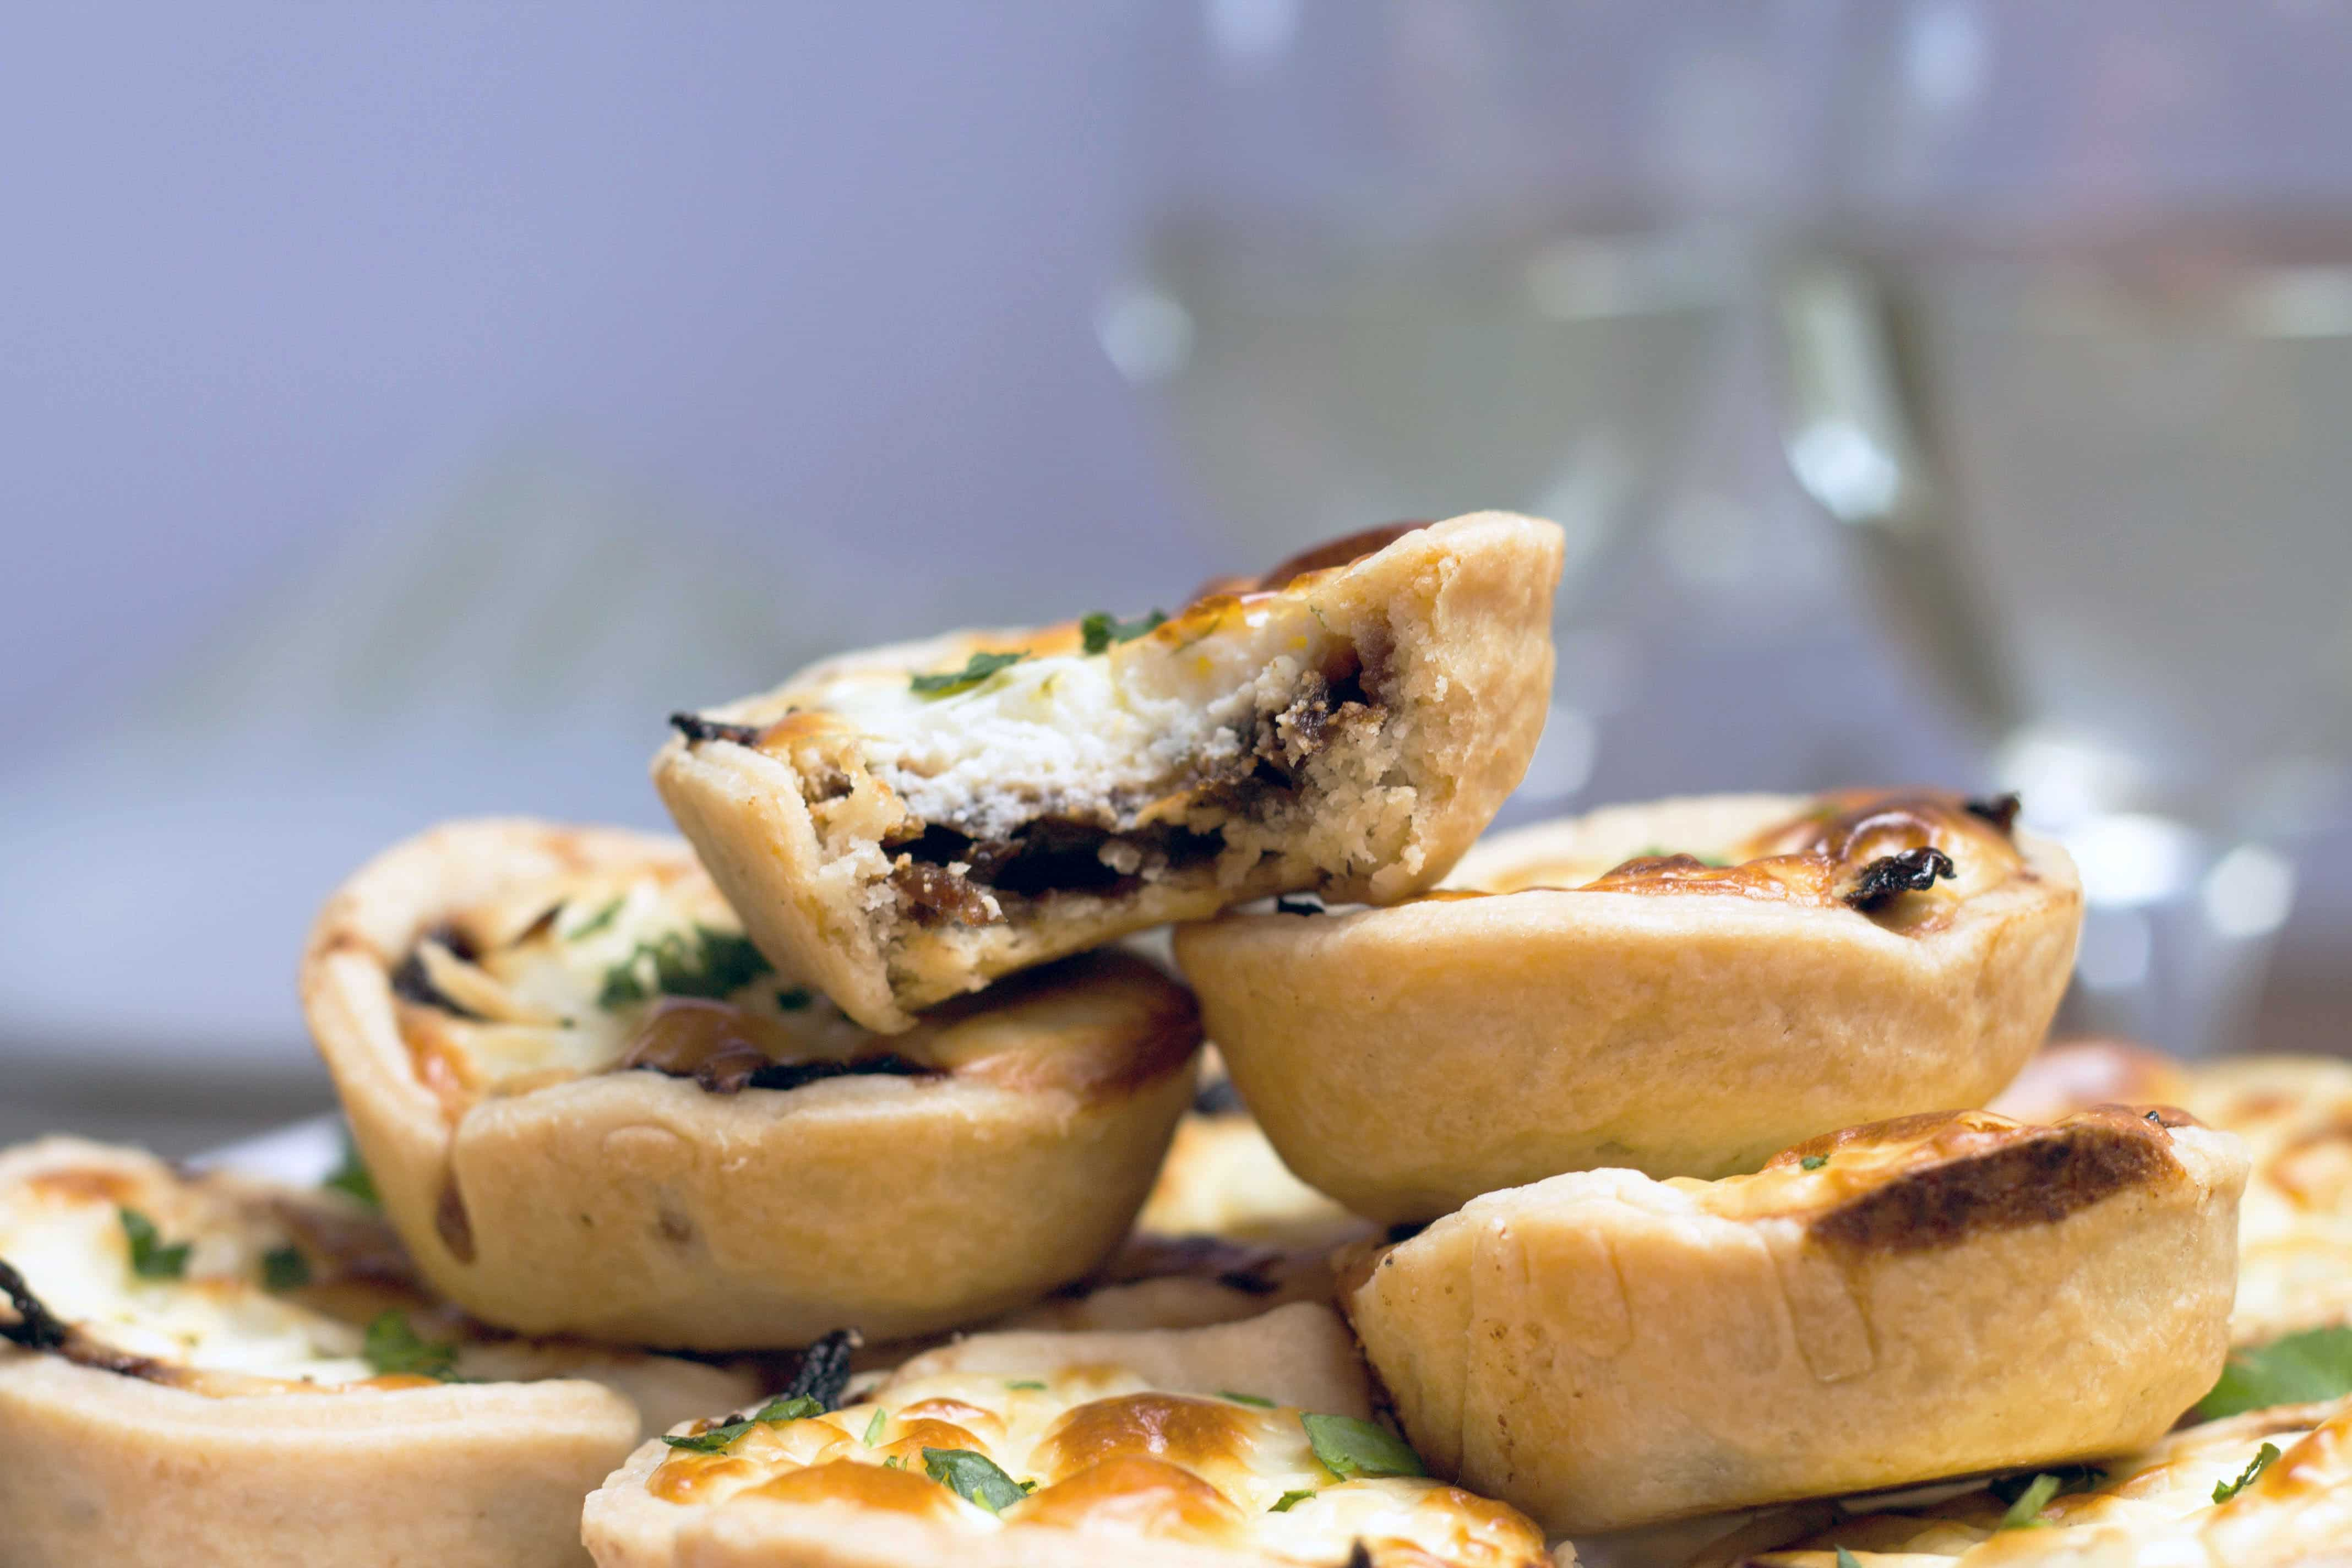 Red Onion & Feta Tarts - one with a bite taken out of it showing the gorgeous filling.